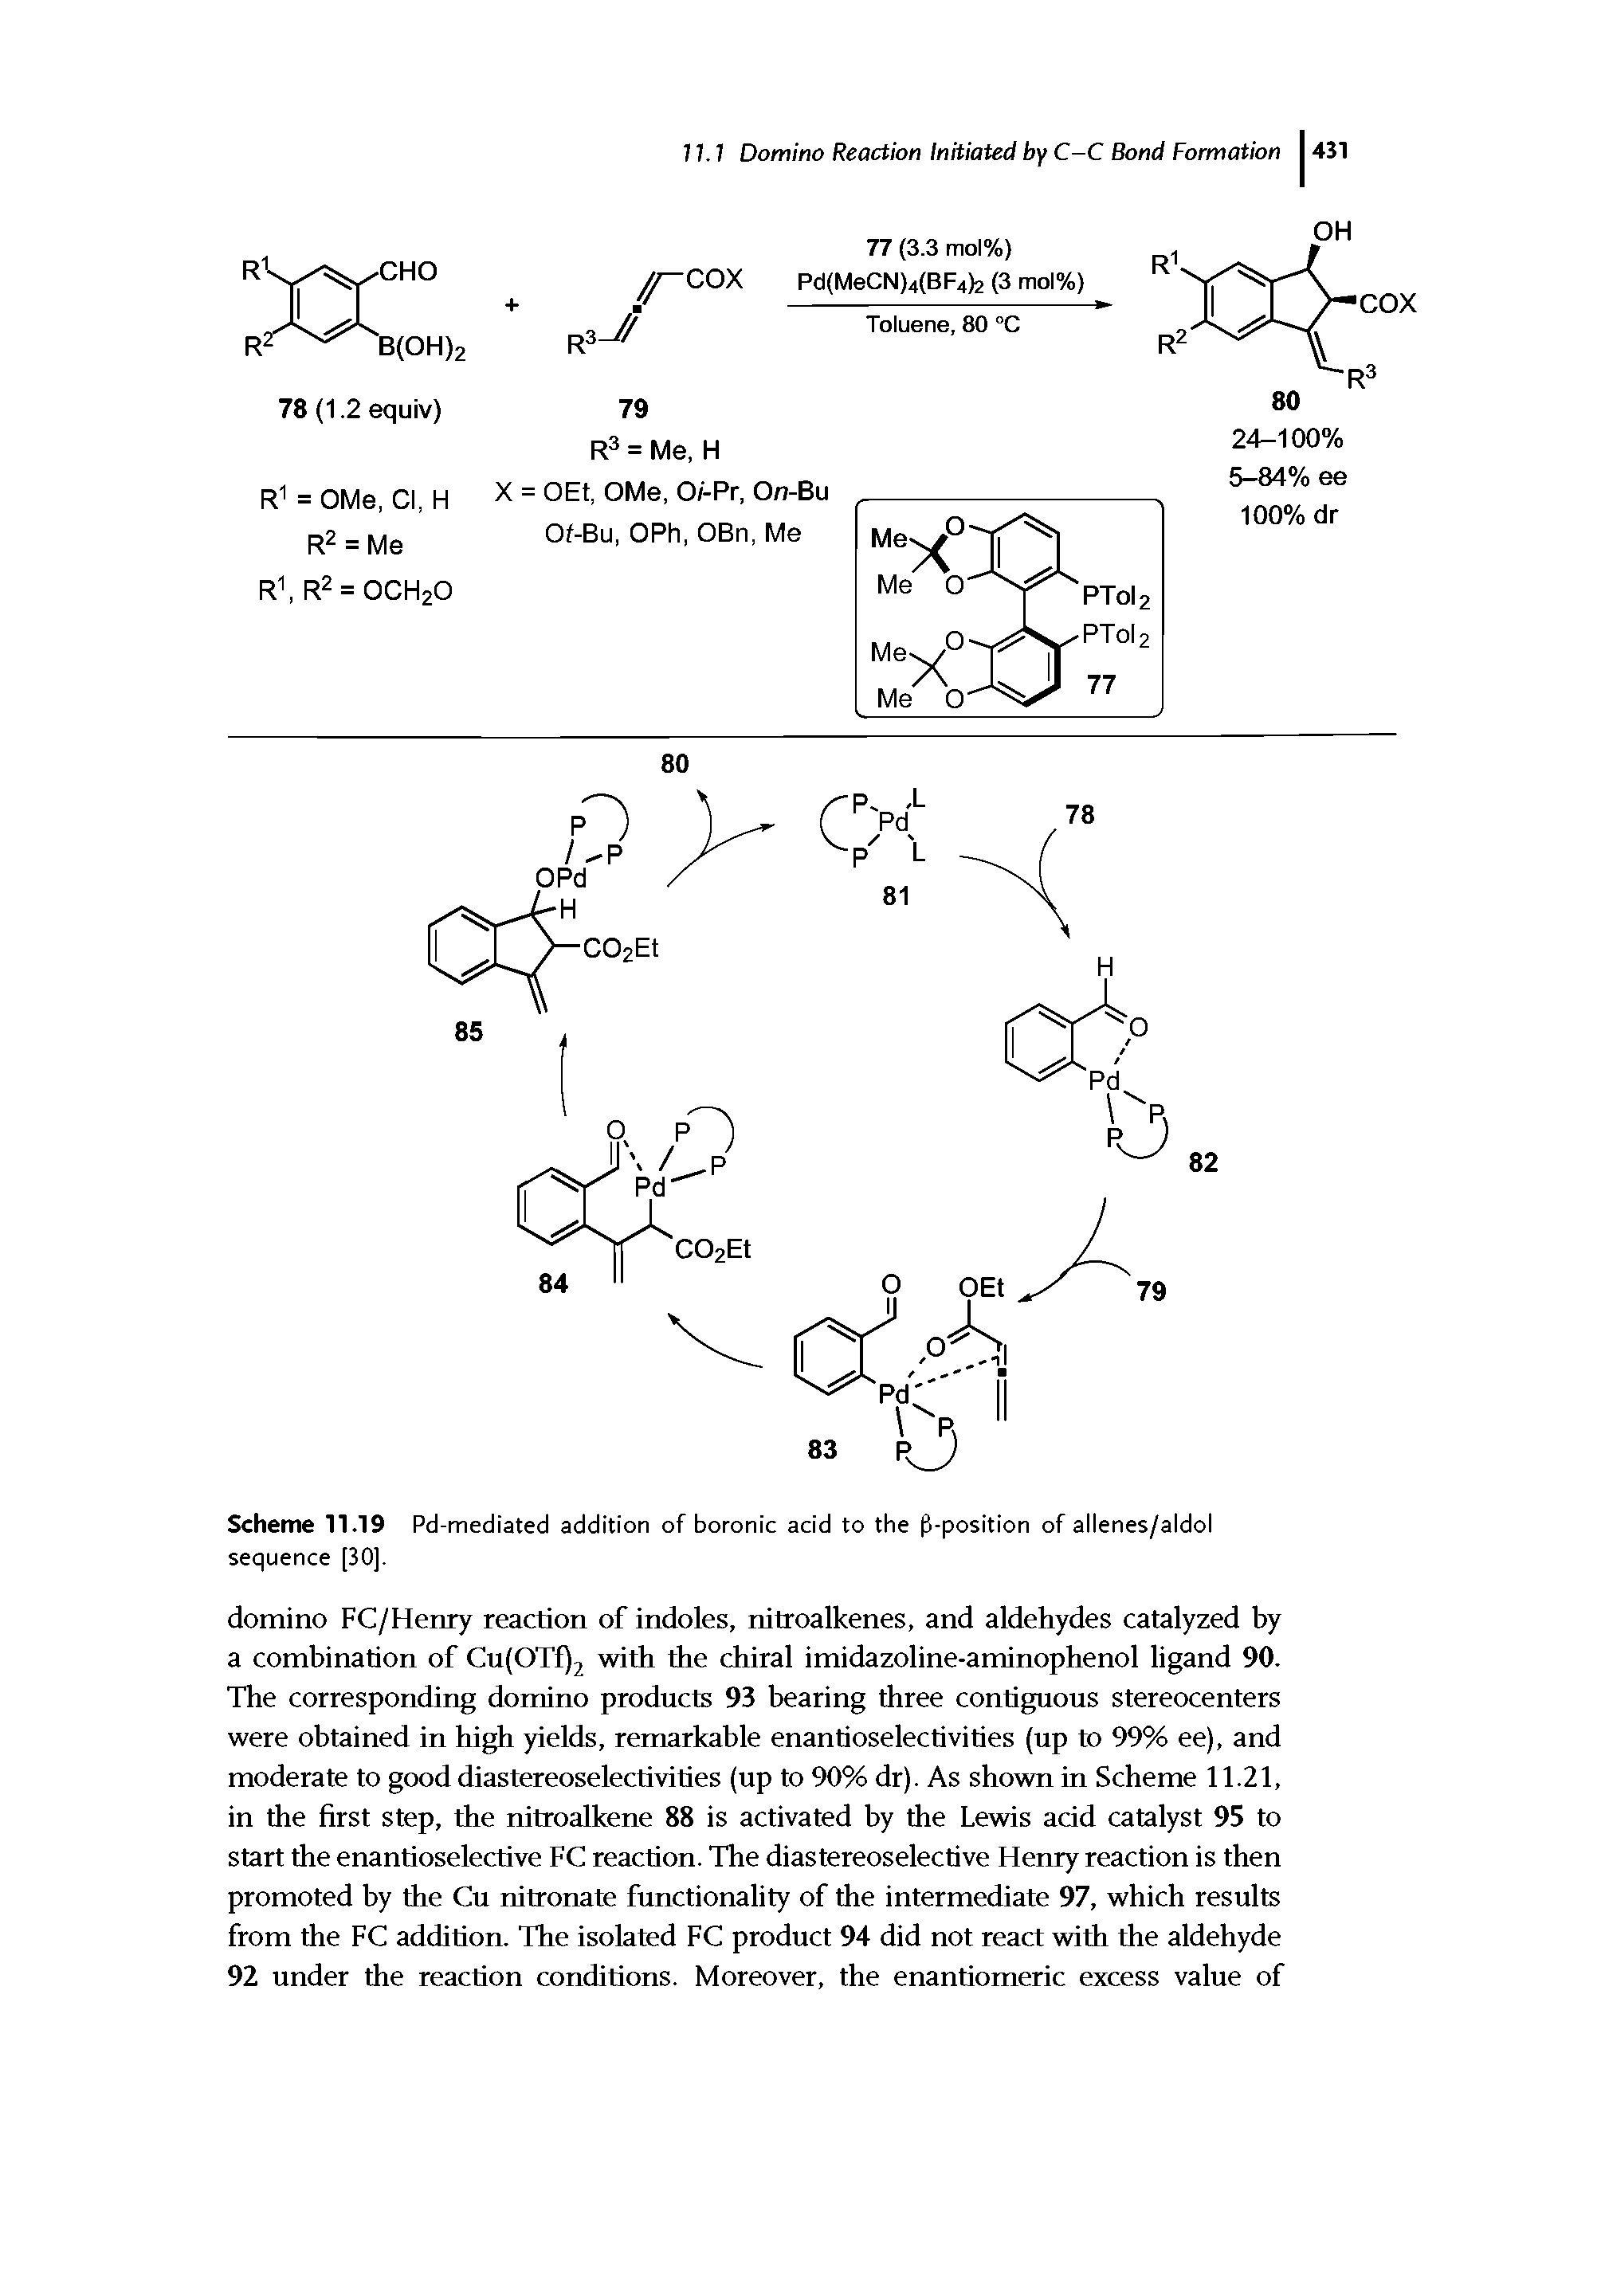 "Scheme 11.19 Pd-mediated addition of <a href=""/info/boronic_acids"">boronic acid</a> to the fl-position of allenes/aldol sequence [30]."